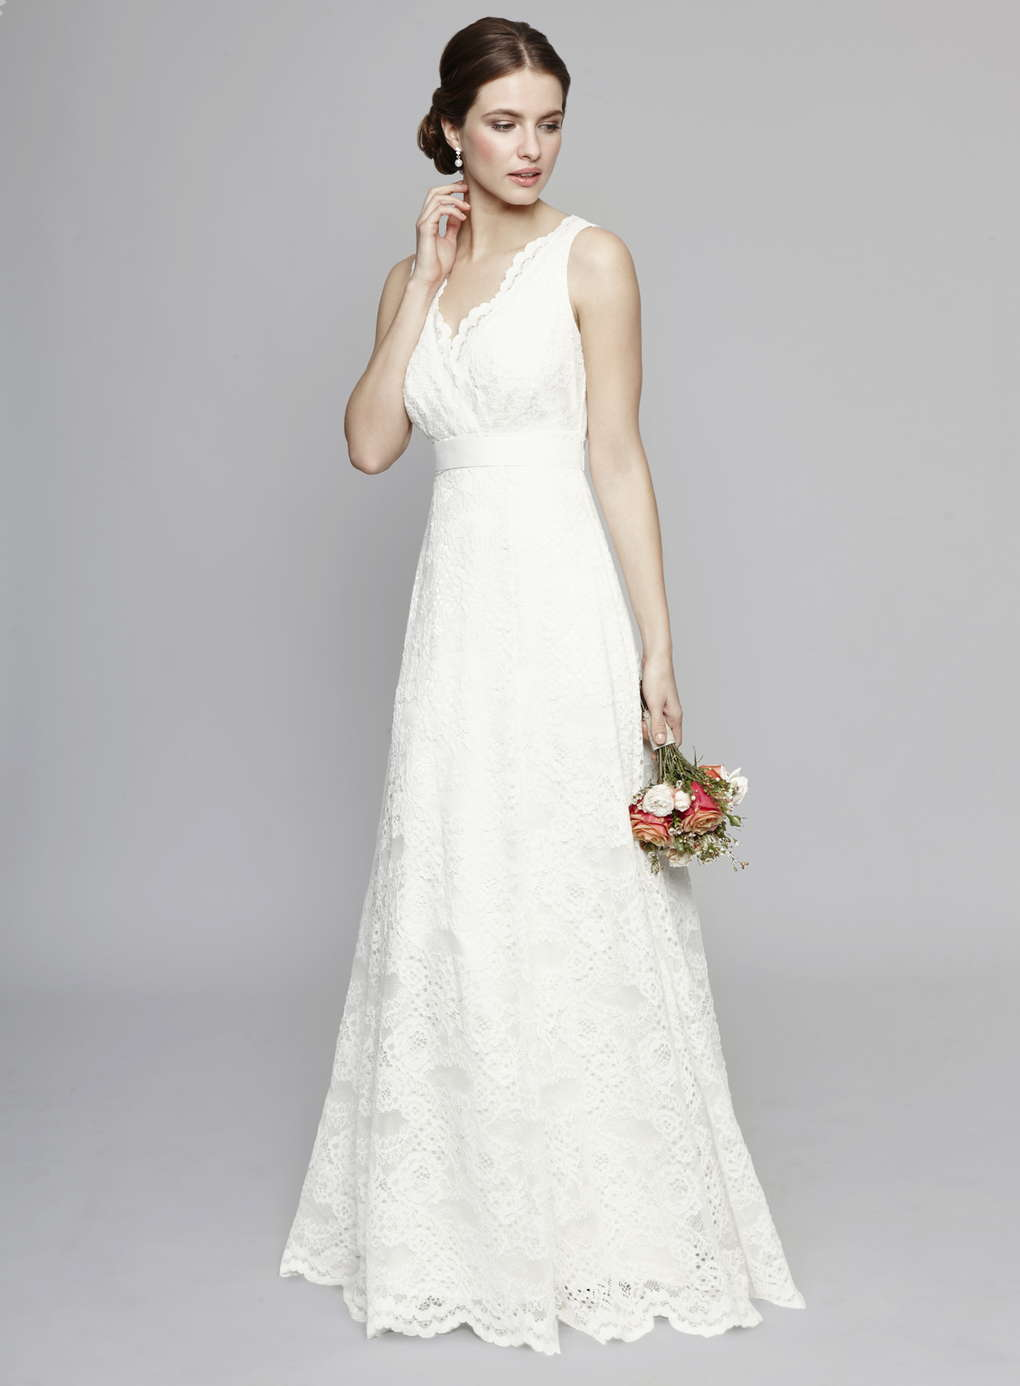 4 wedding dress under $ bella1 bella2